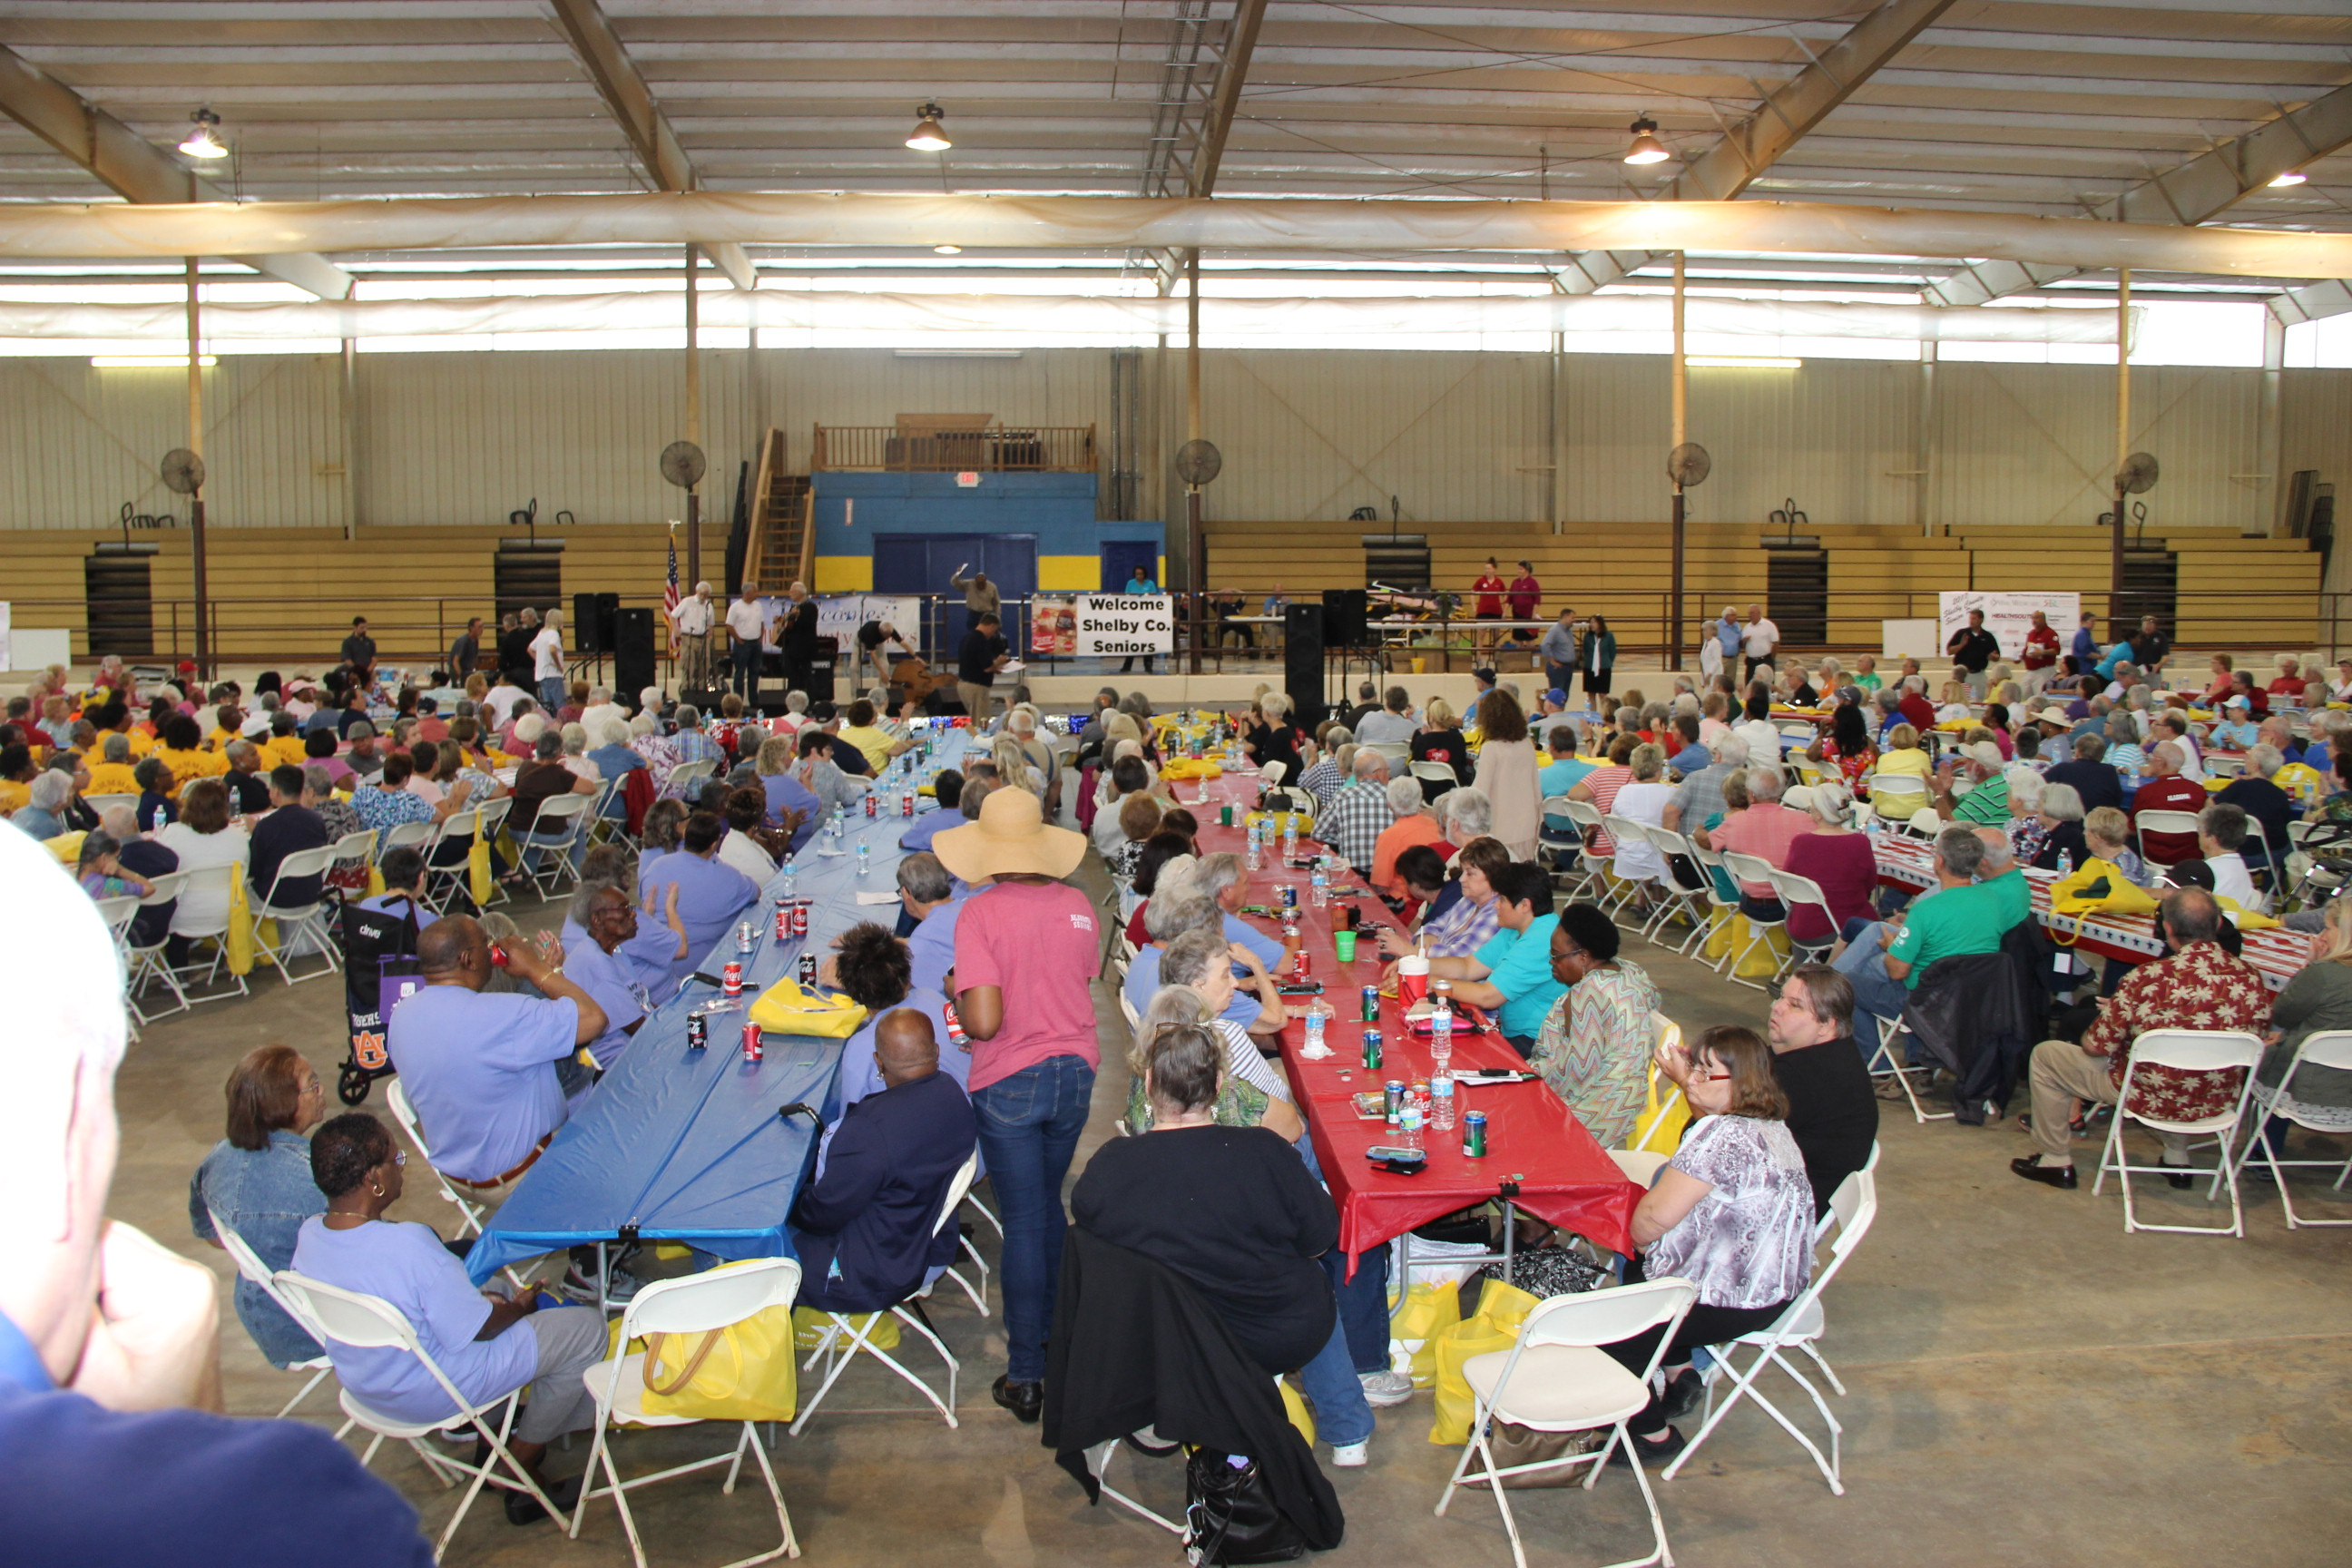 Image of attendees at the 2017 Senior Picnic